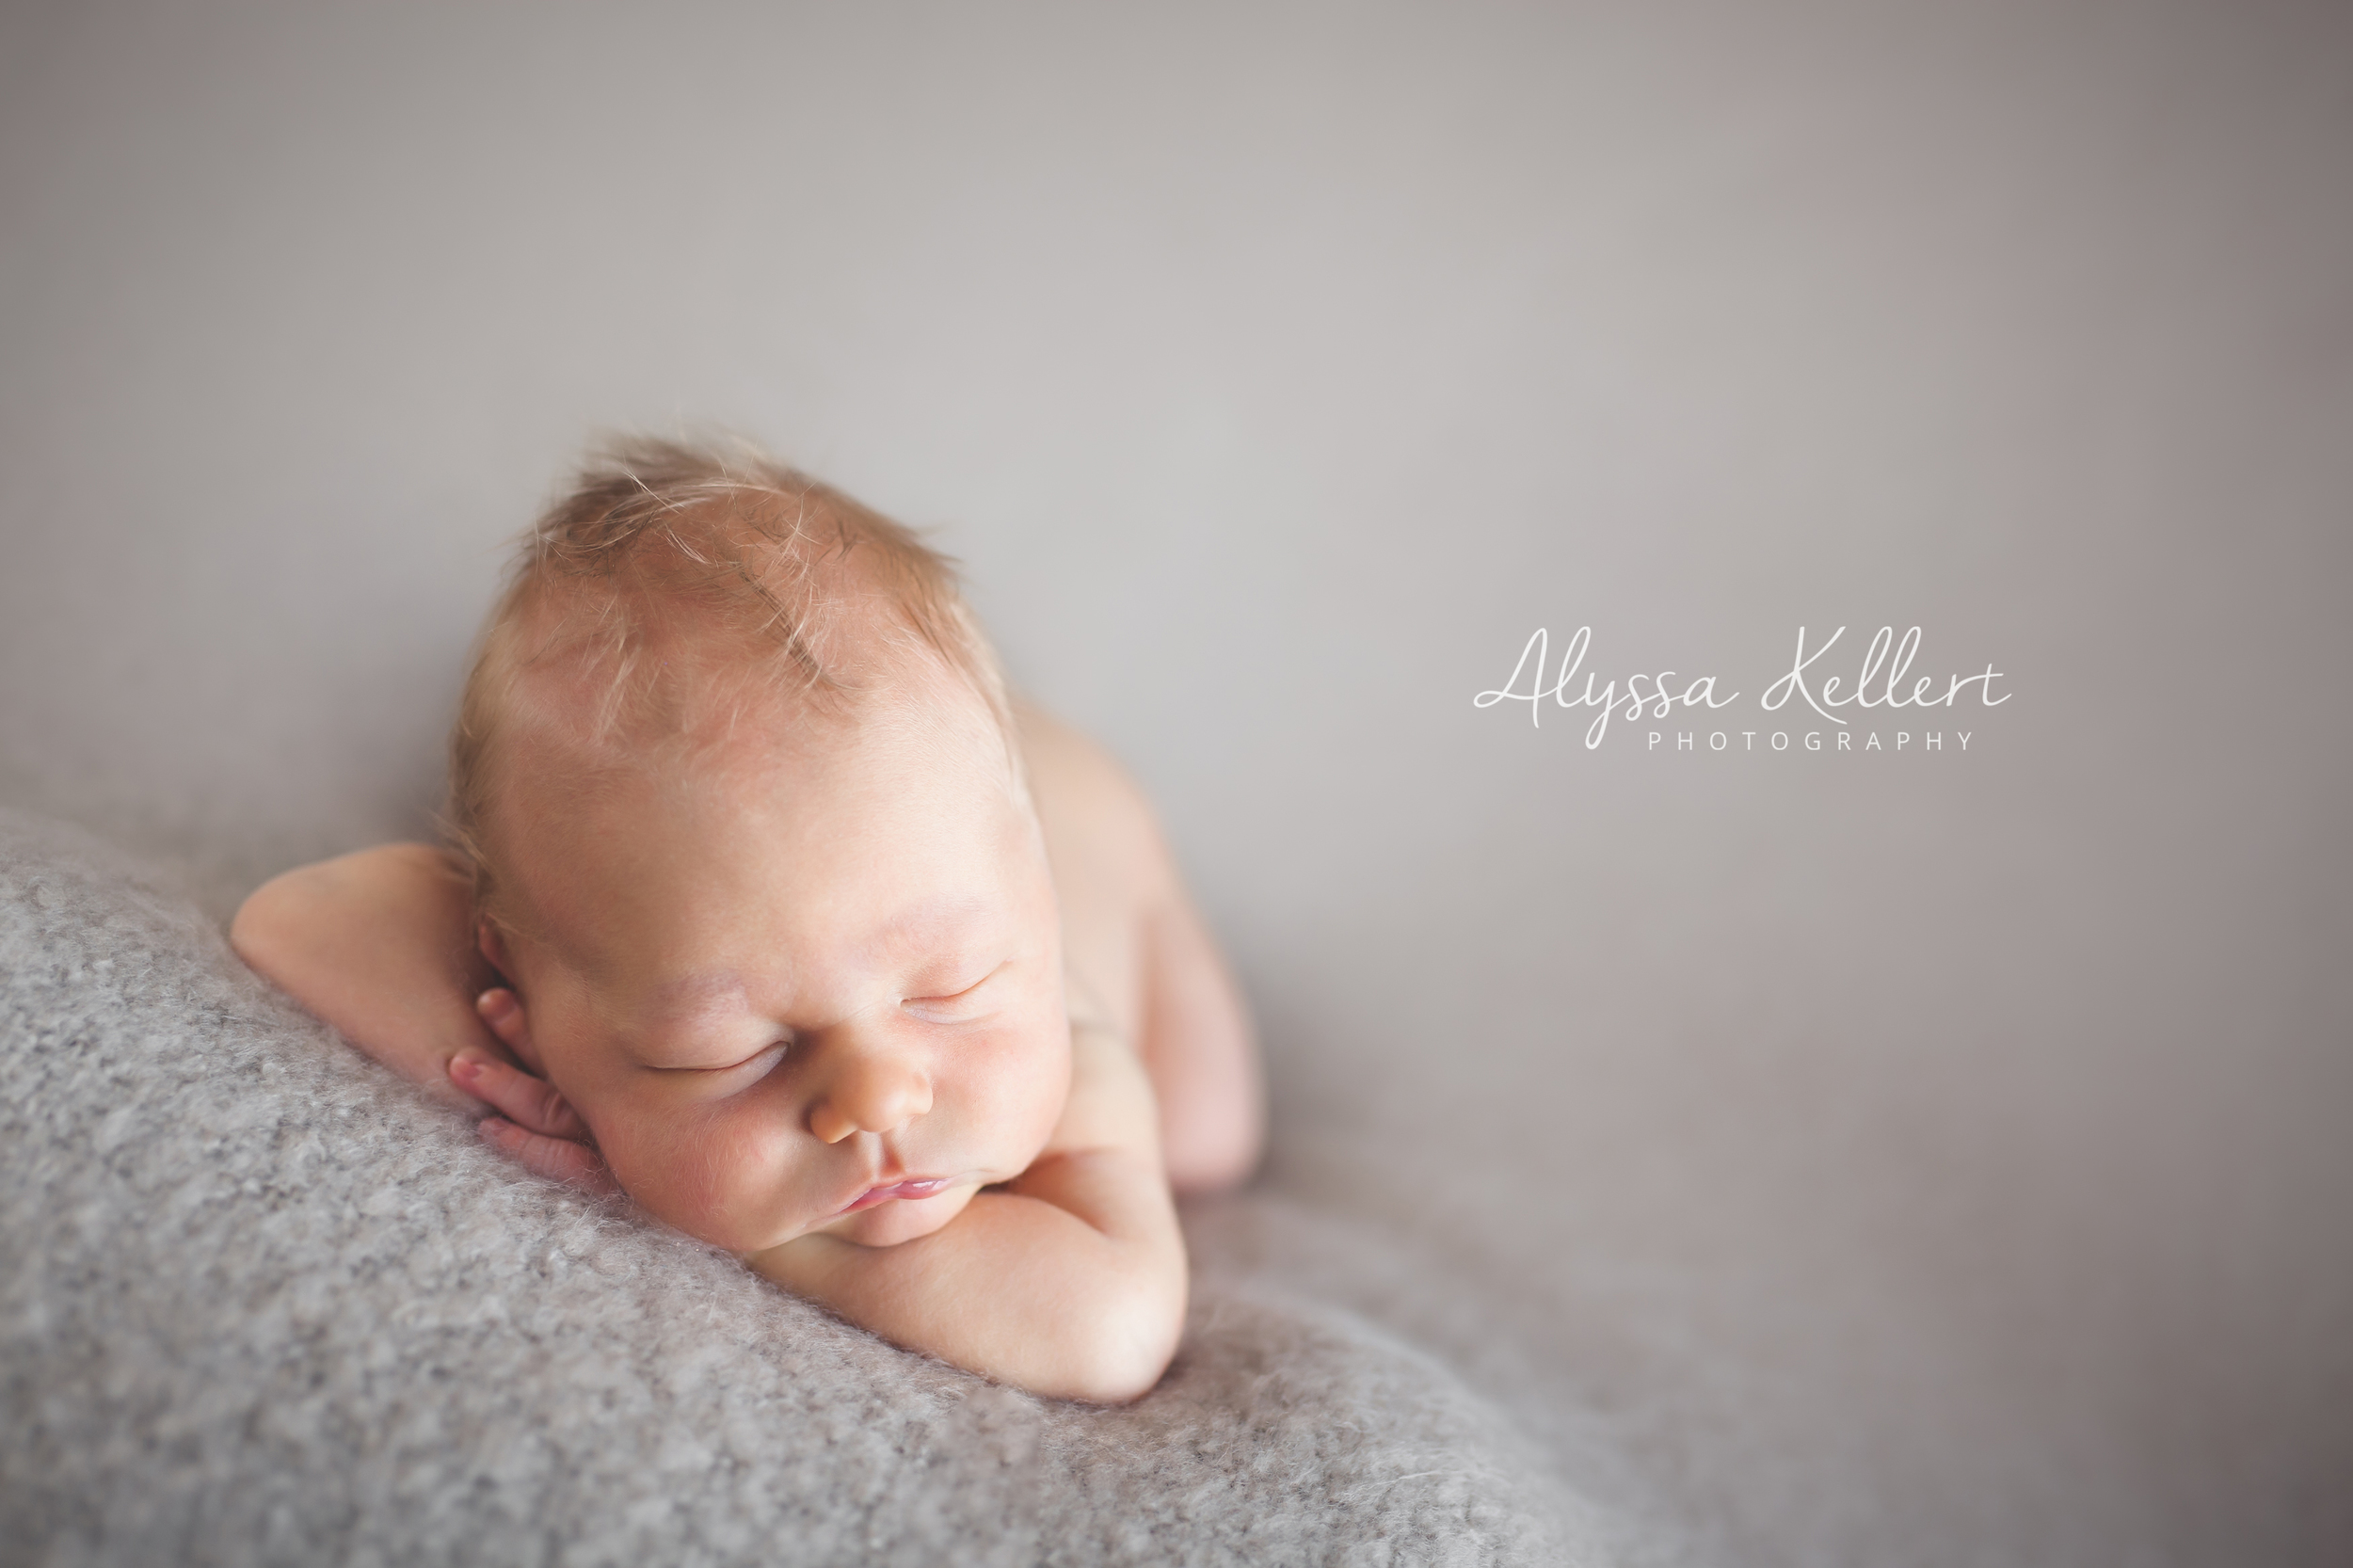 Photo by: Alyssa Kellert Photography